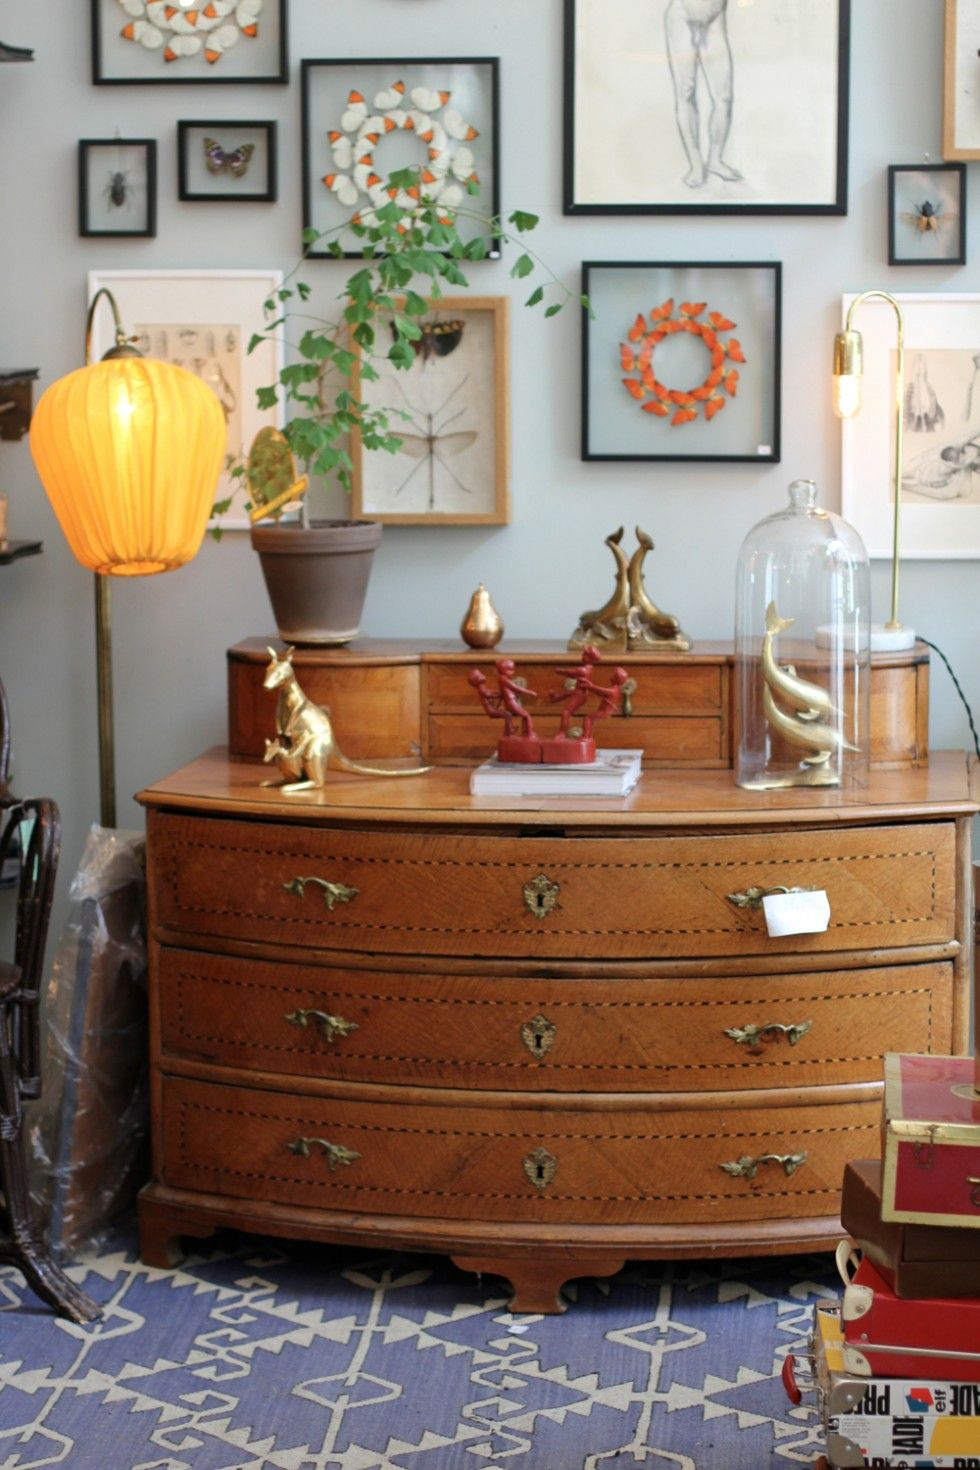 Pin by A Sandin on Living Room | Dresser as nightstand ...